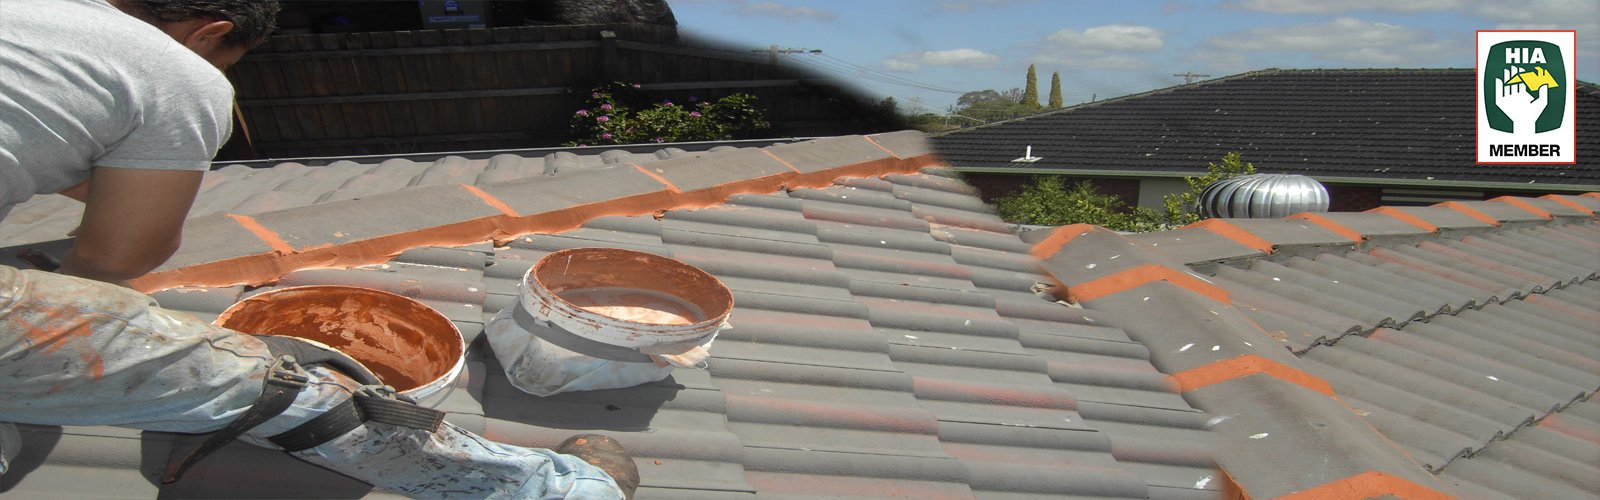 Roofing Roof Restoration Roof Repairs Painting Cleaning